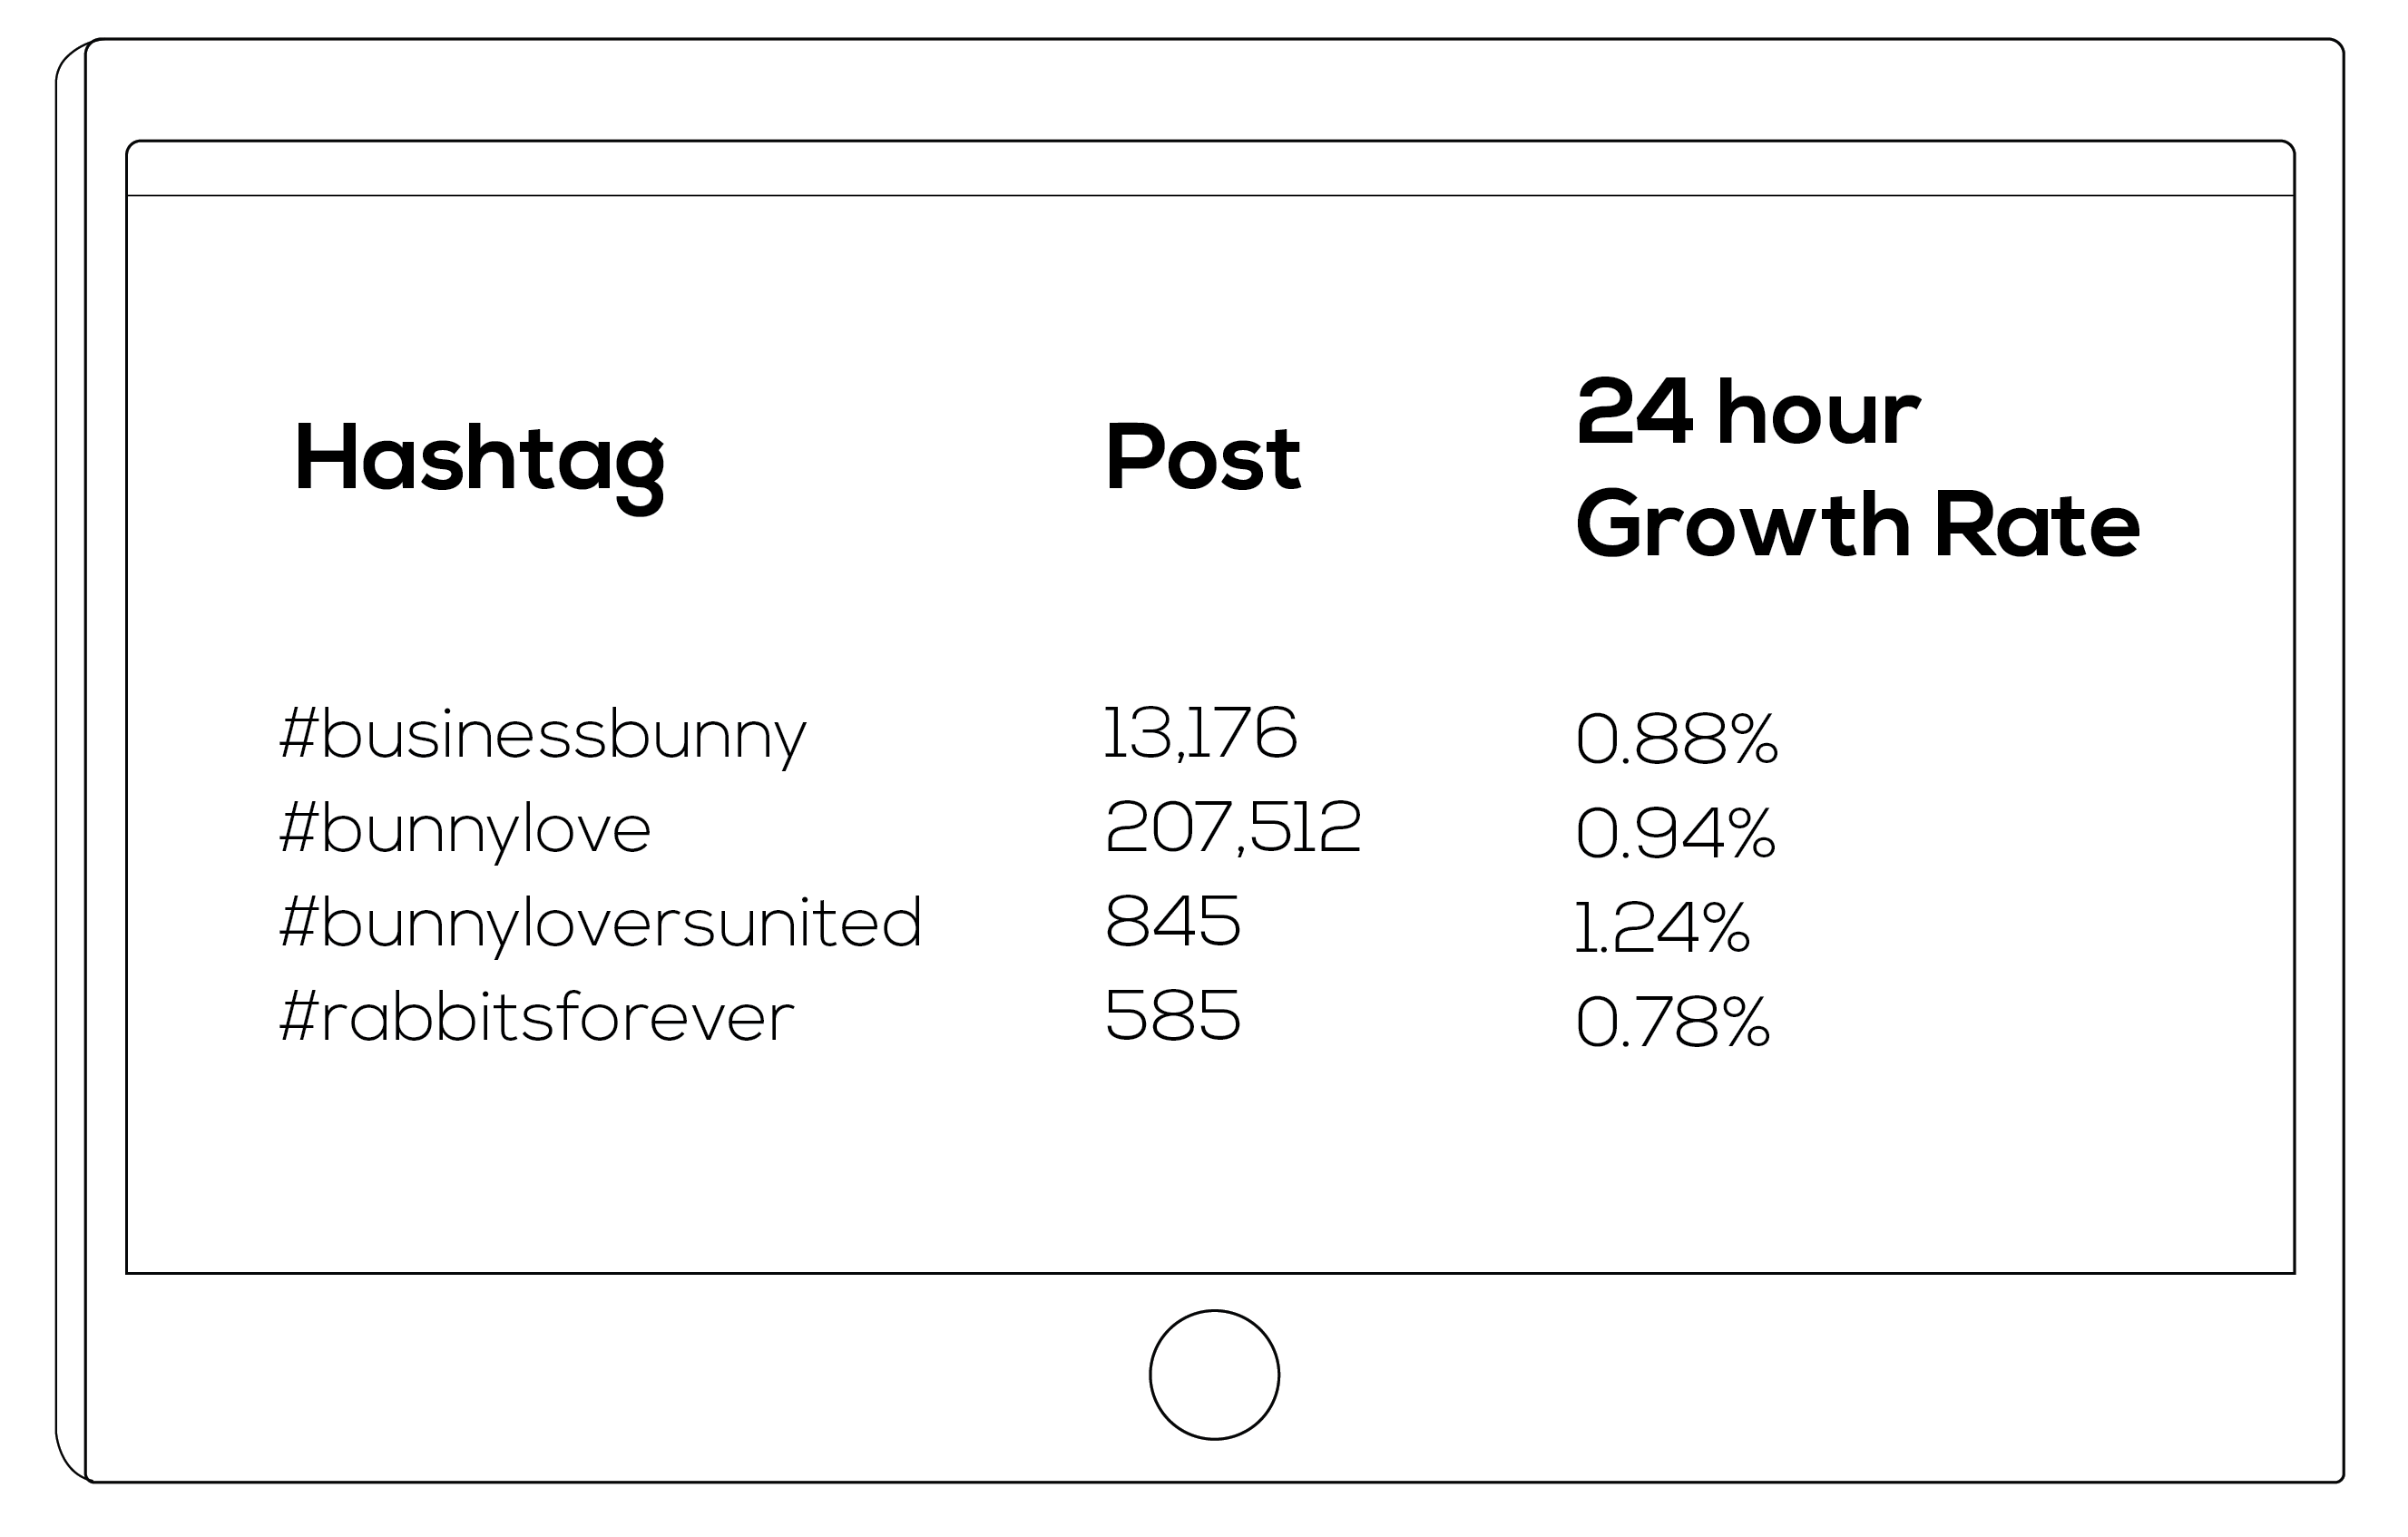 High Growth Hashtags